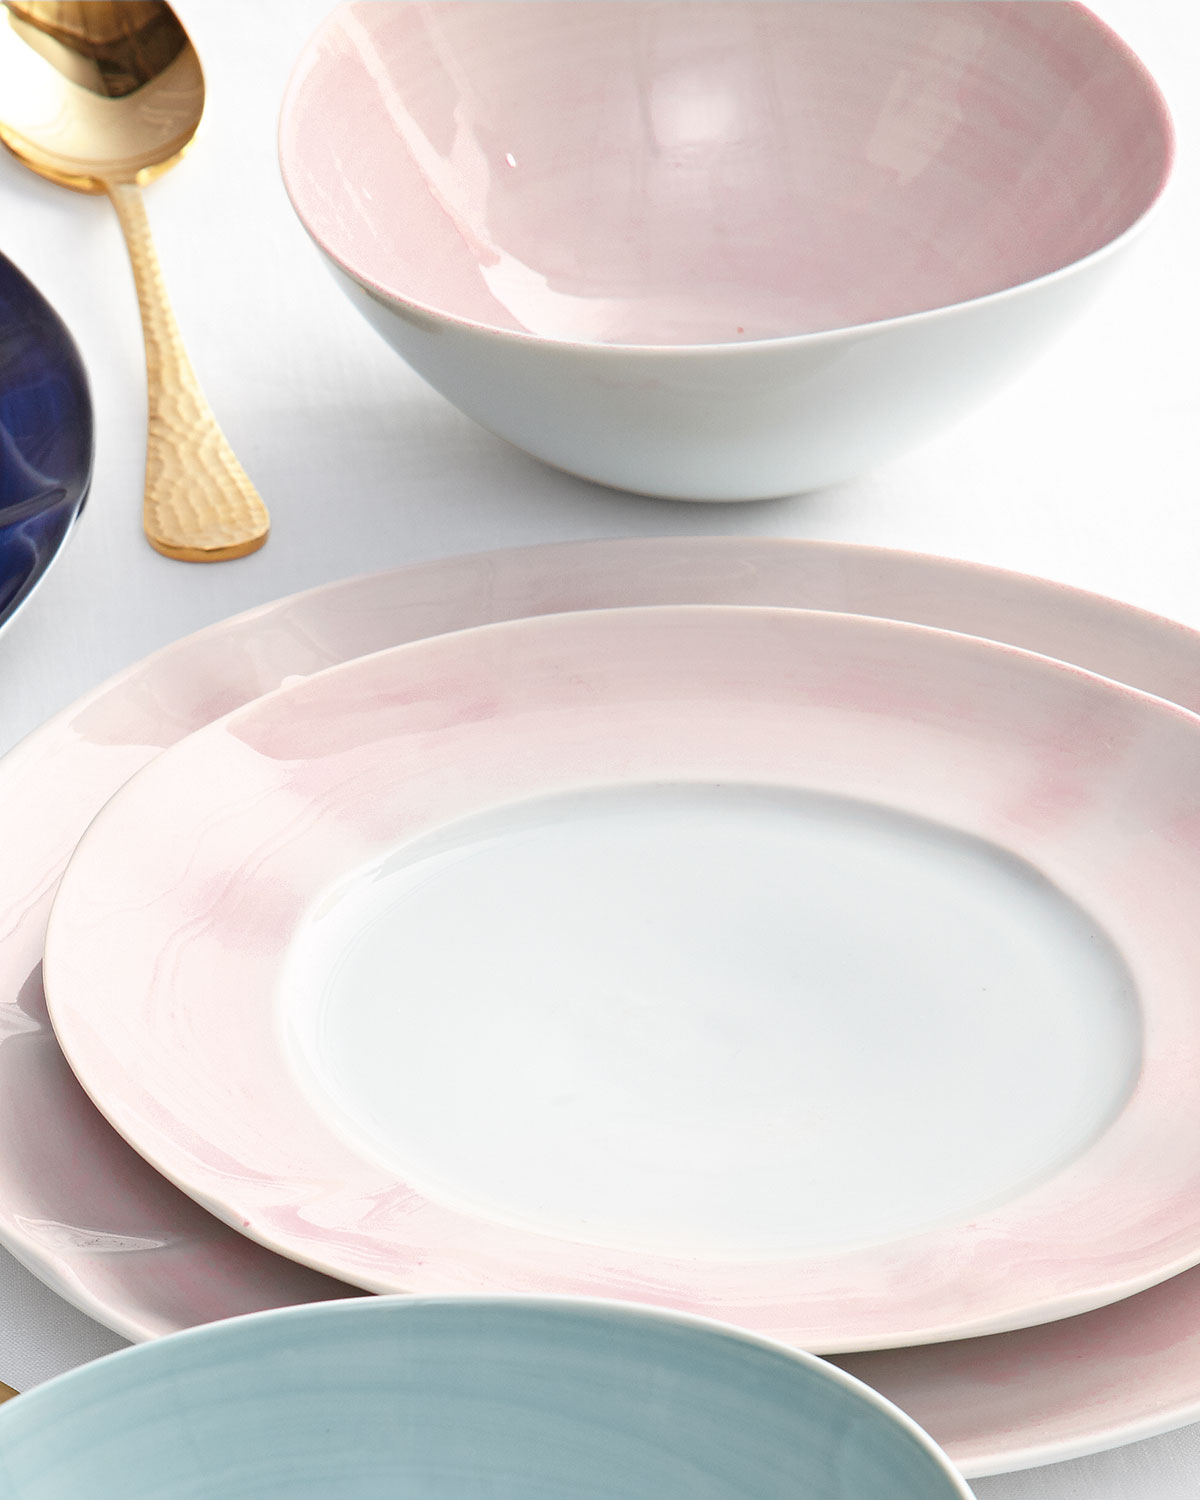 12-Piece Pink Brushstroke Dinnerware Service : dinnerware from portugal - pezcame.com